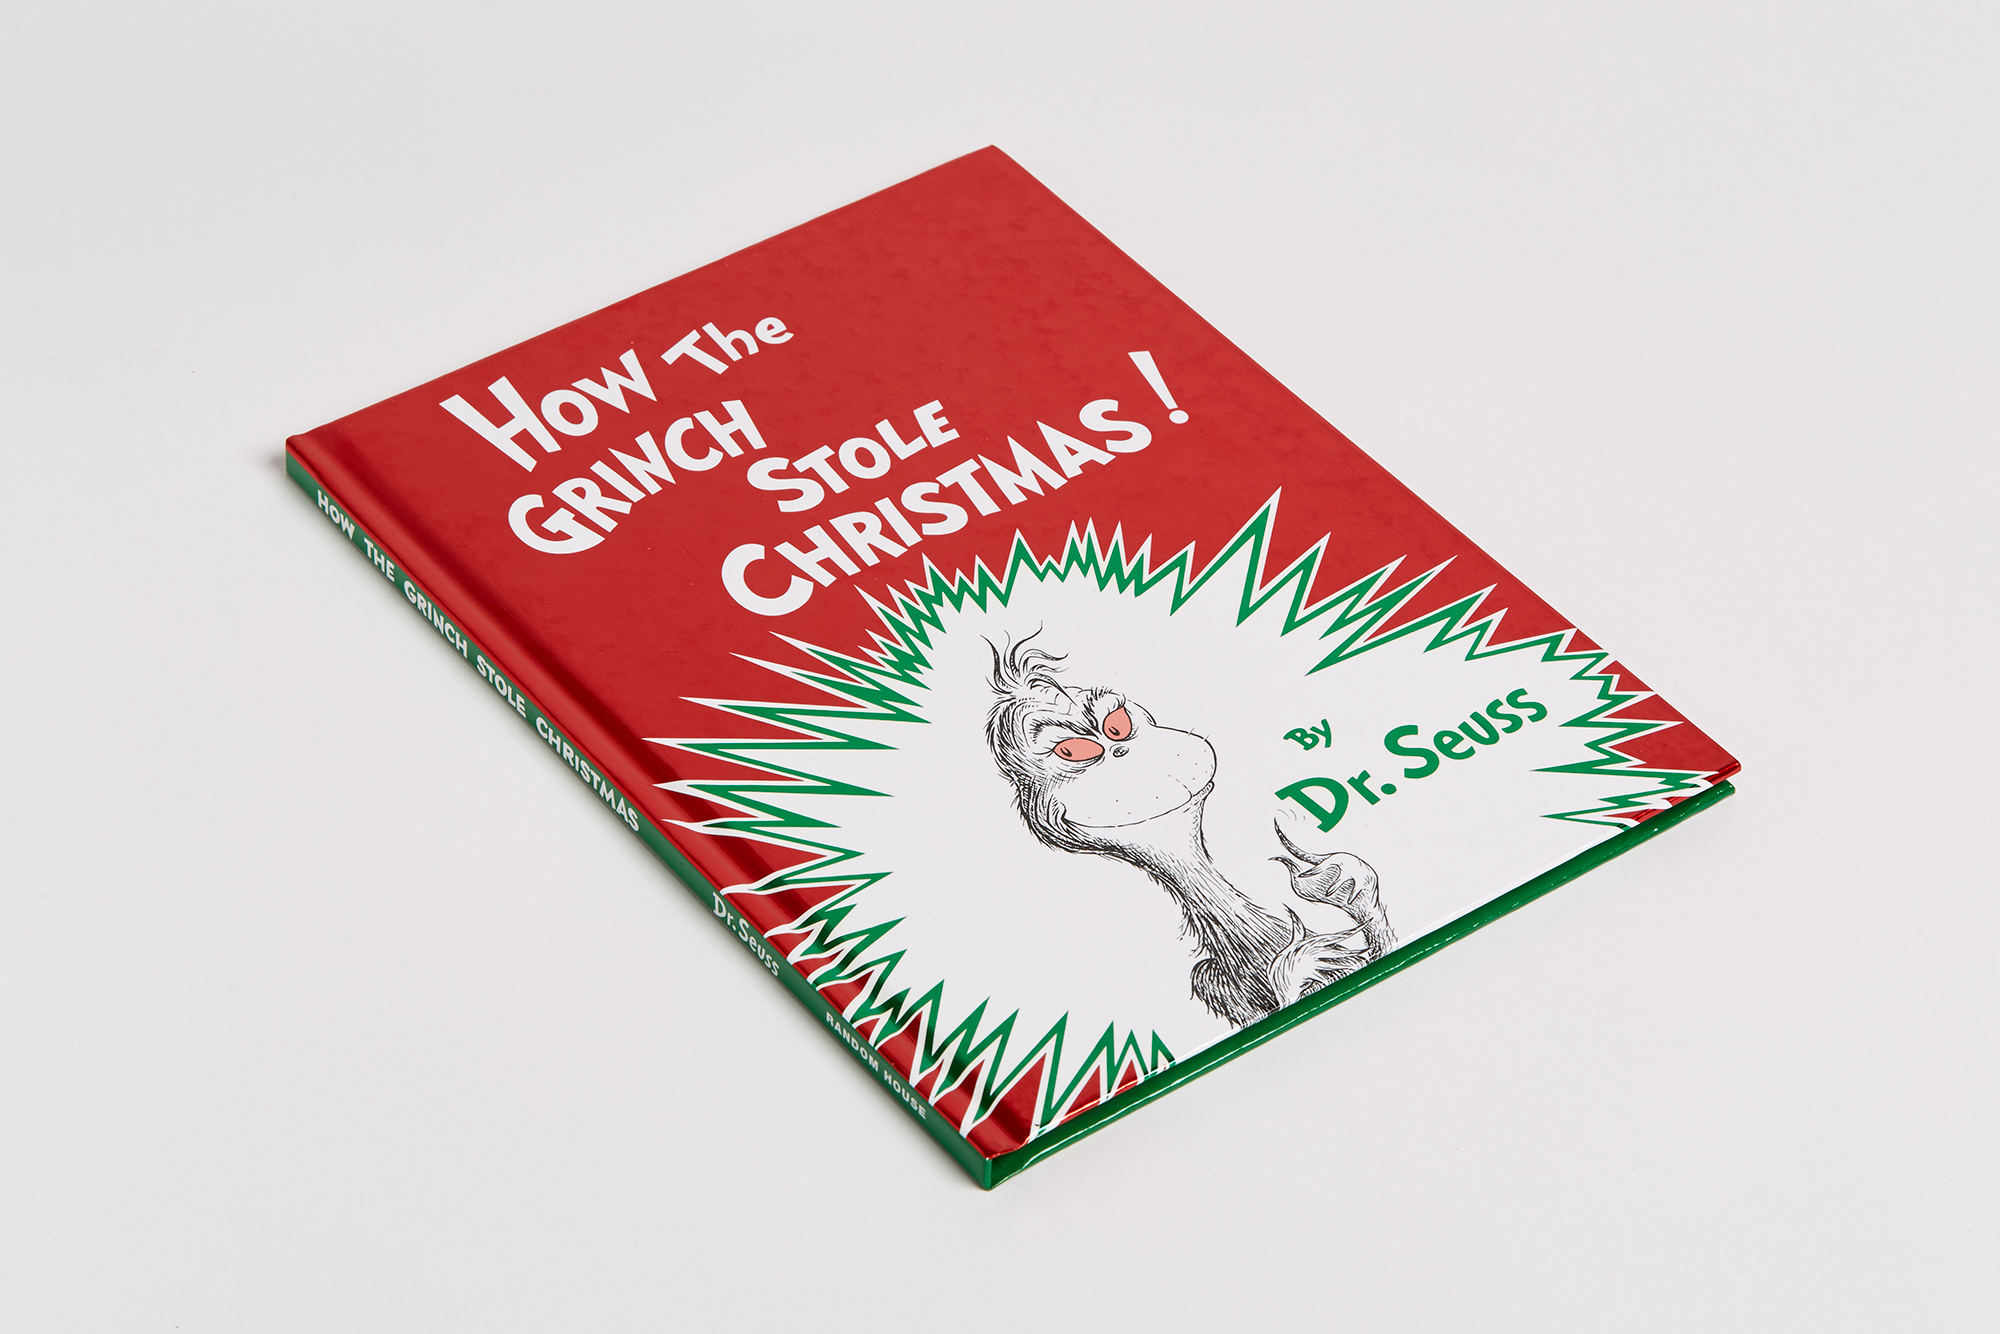 How The Grinch Stole Christmas Book Cover.How The Grinch Stole Christmas Penguin Random House Retail